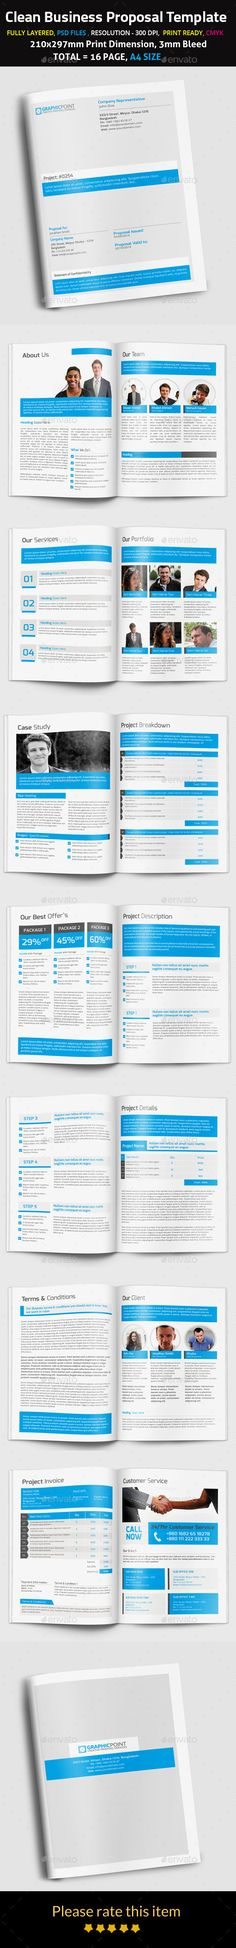 Quick Business Proposal Template Business proposal template - sales proposal template